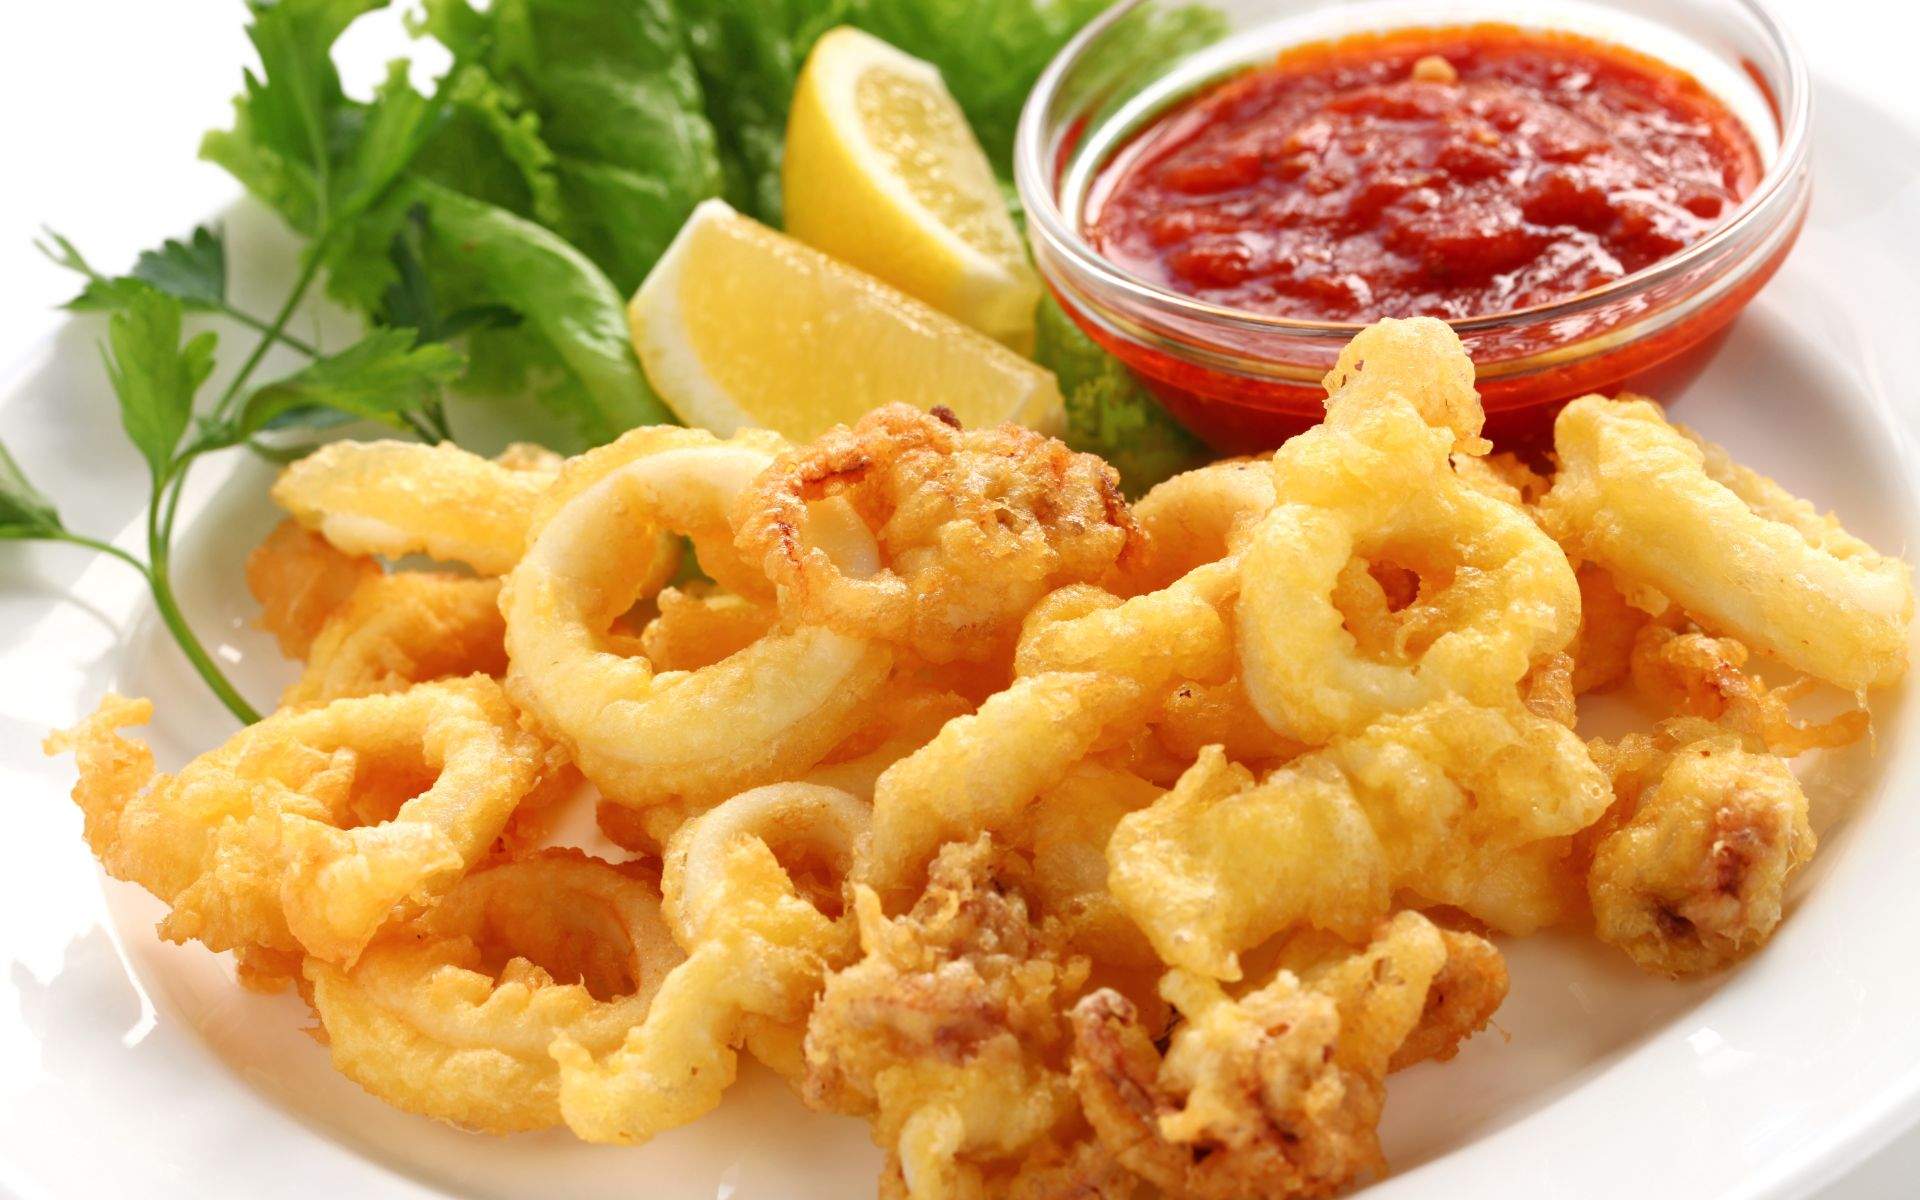 Fried calamari on a plate with lemon and marinara sauce